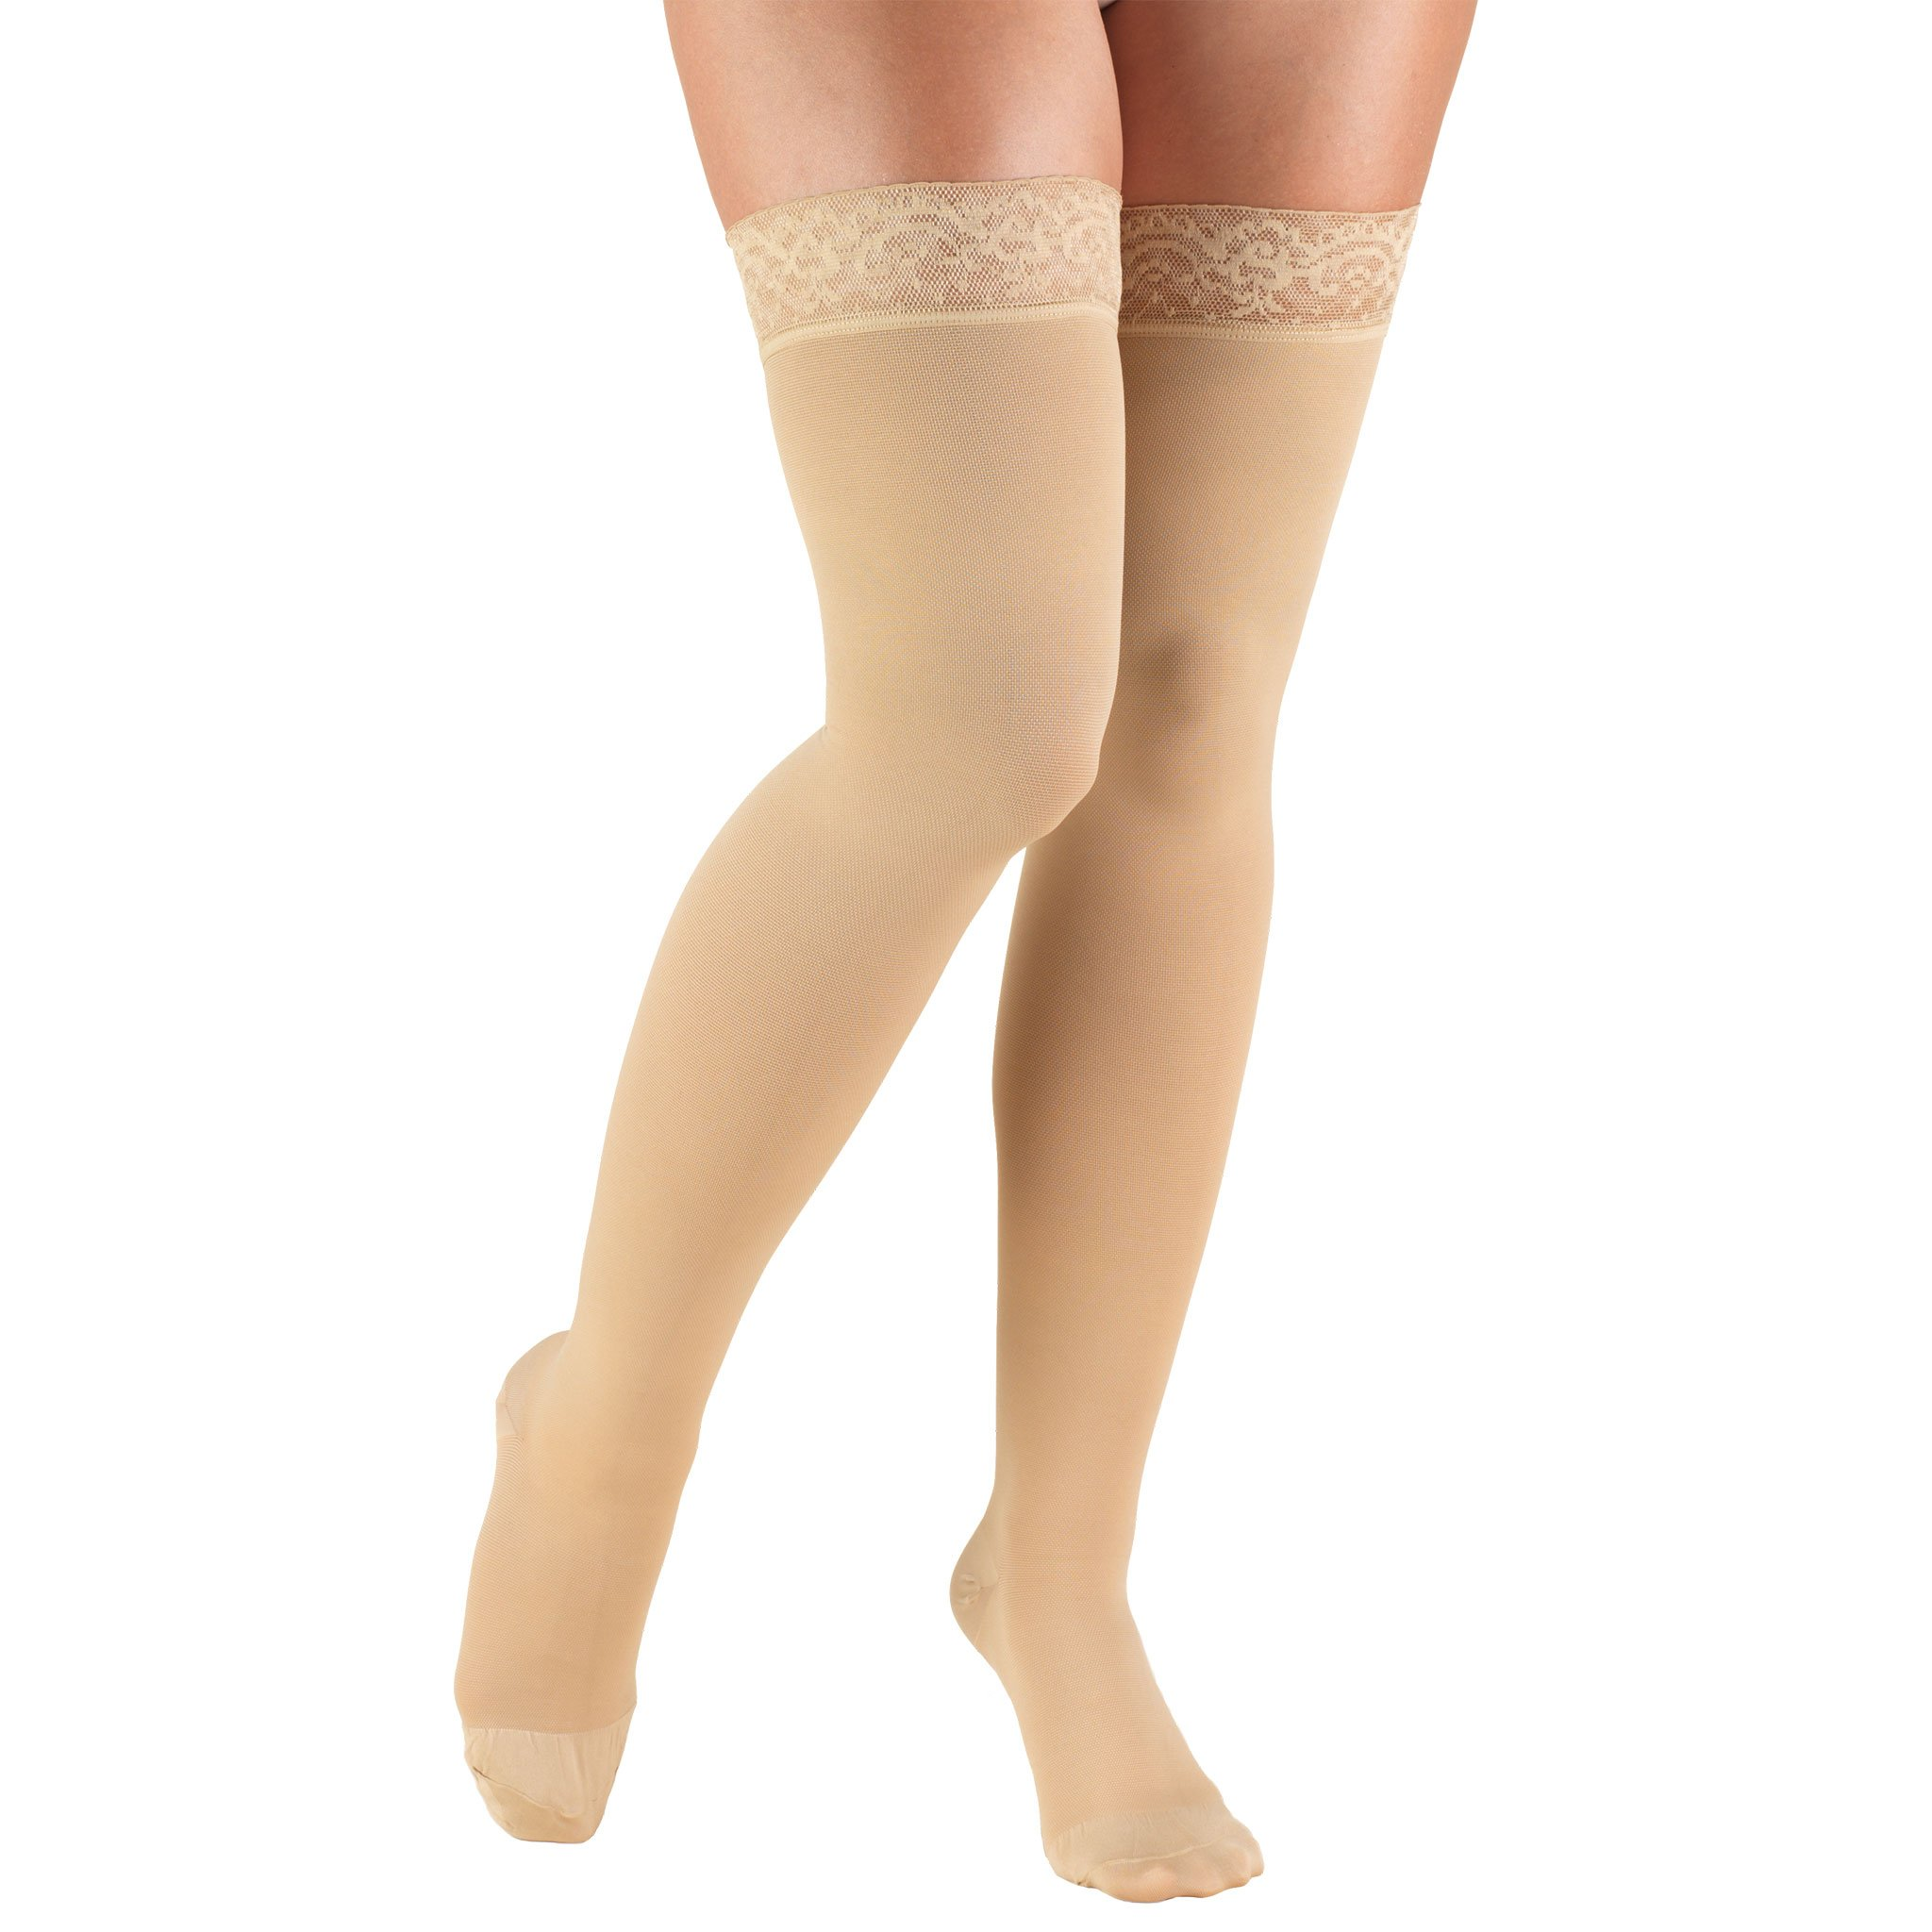 Truform Women's Closed Toe, Thigh High 20-30 mmHg Compression Stockings, Lace Top, Beige, Medium